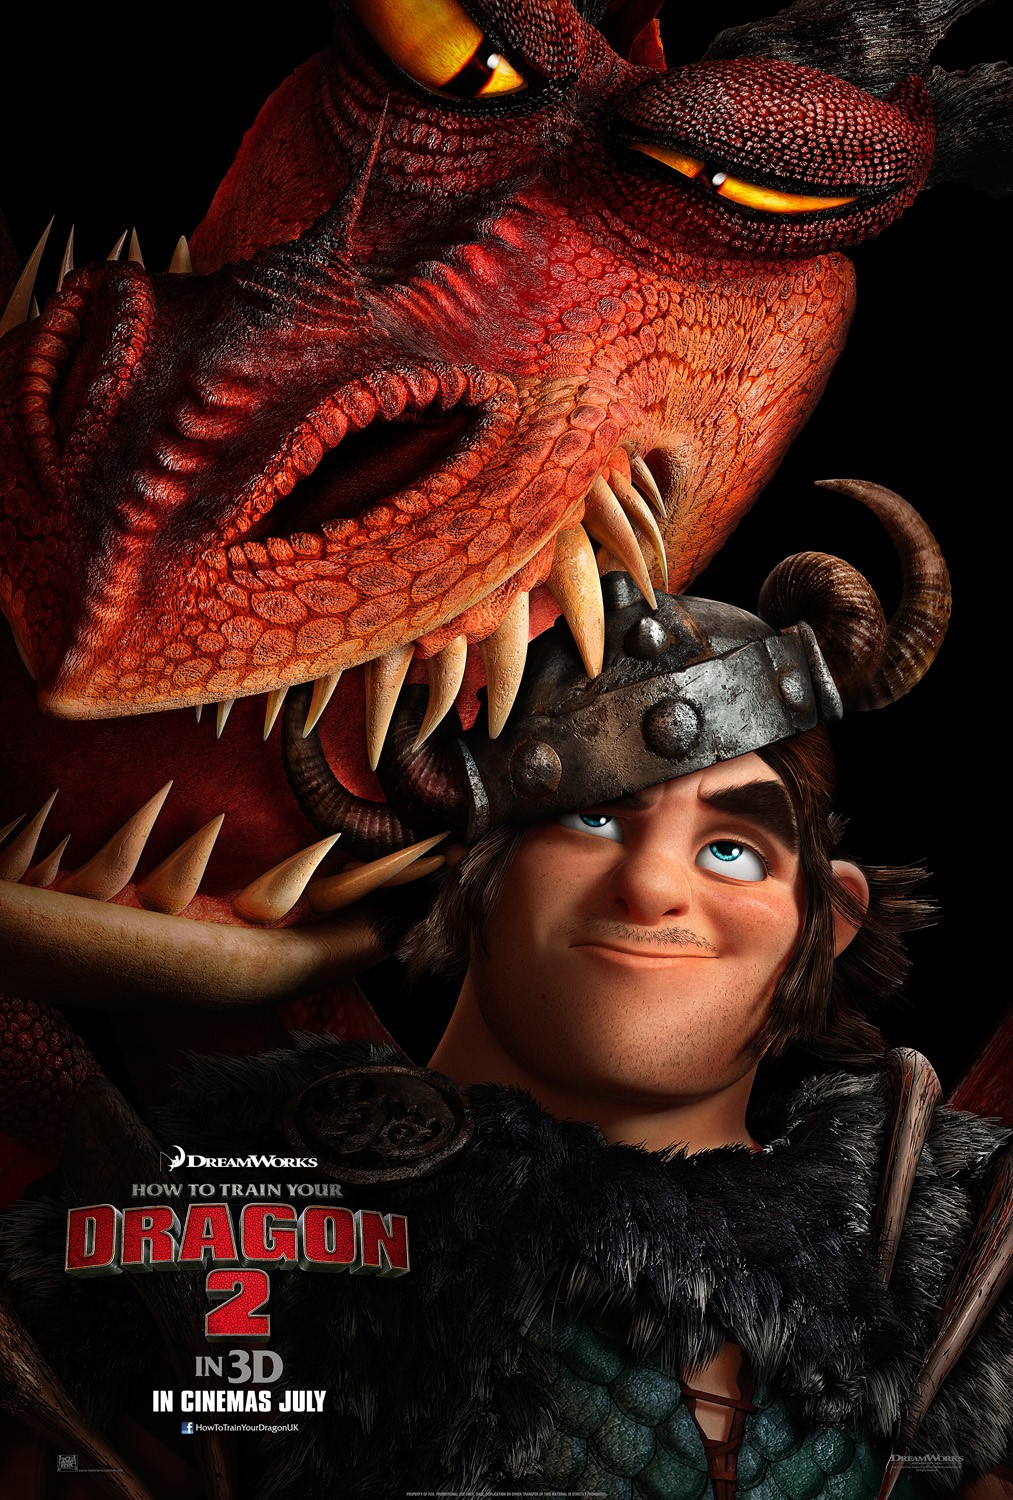 How to Train Your Dragon 2-Official Poster Banner PROMO XLG-03MARÇO2014